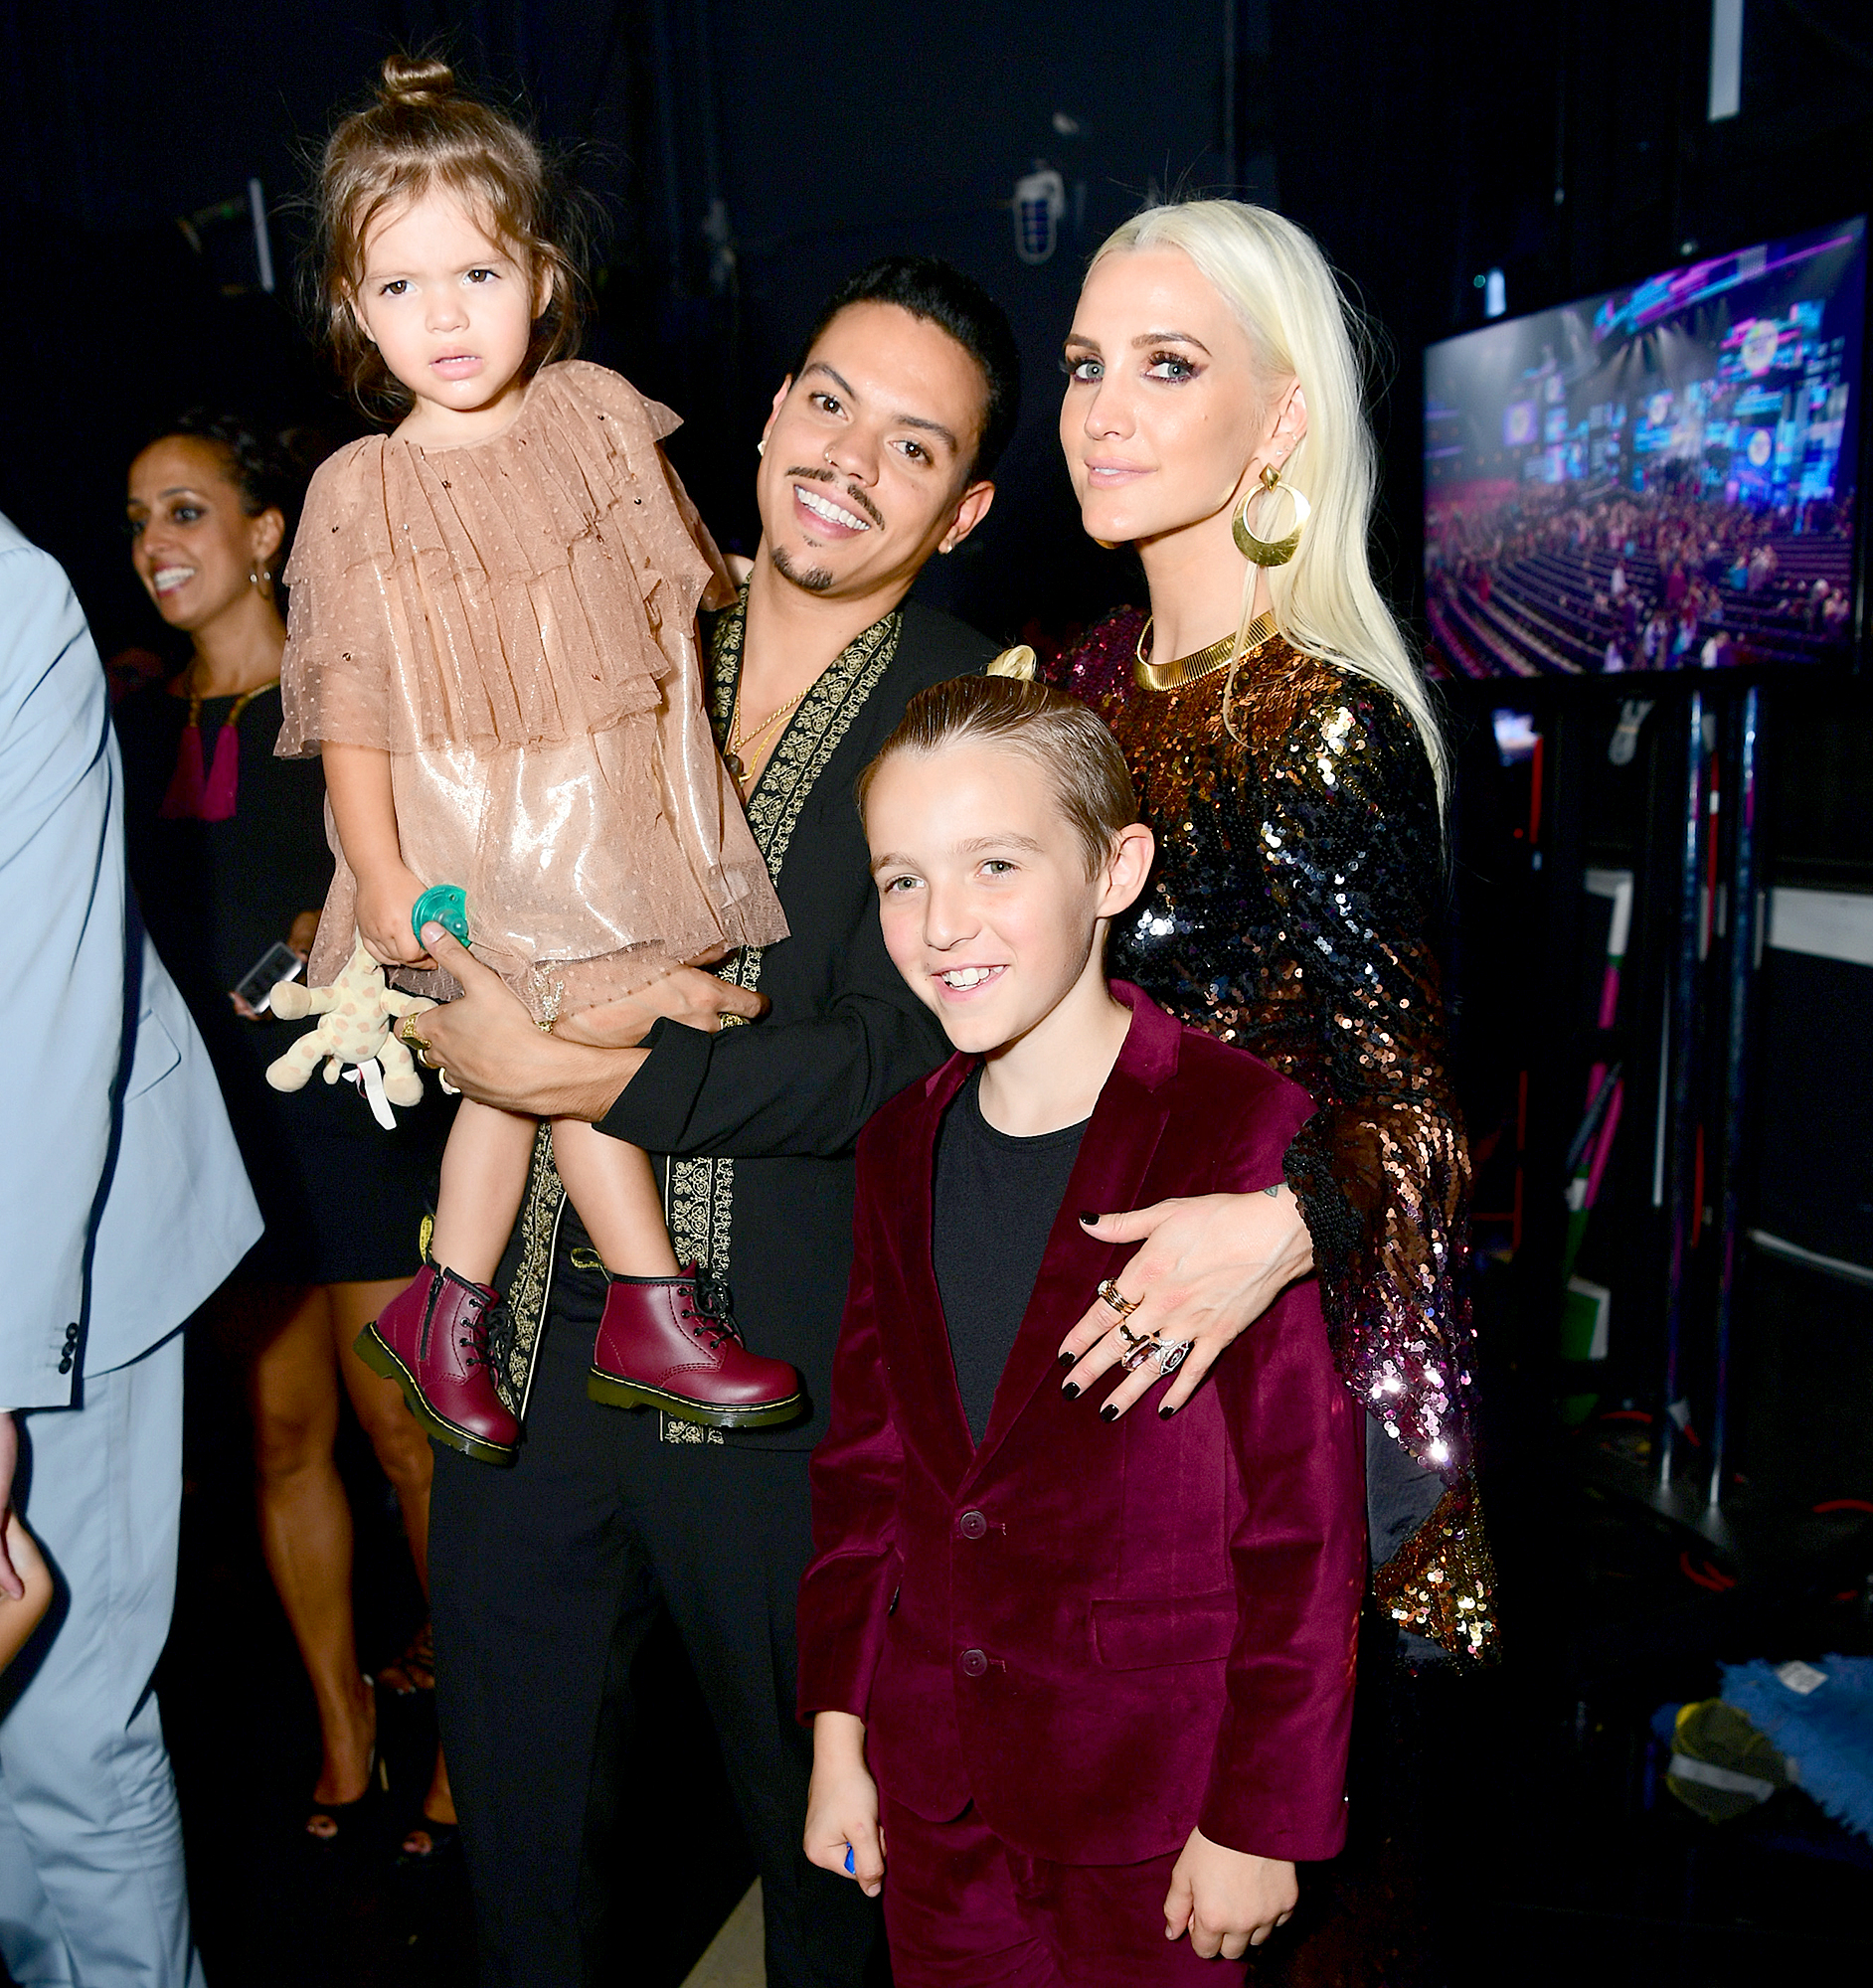 Ashlee-Simpson-and-Evan-Ross-kids - Evan Ross and Ashlee Simpson attend the 2017 American Music Awards at Microsoft Theater on November 19, 2017 in Los Angeles, California.